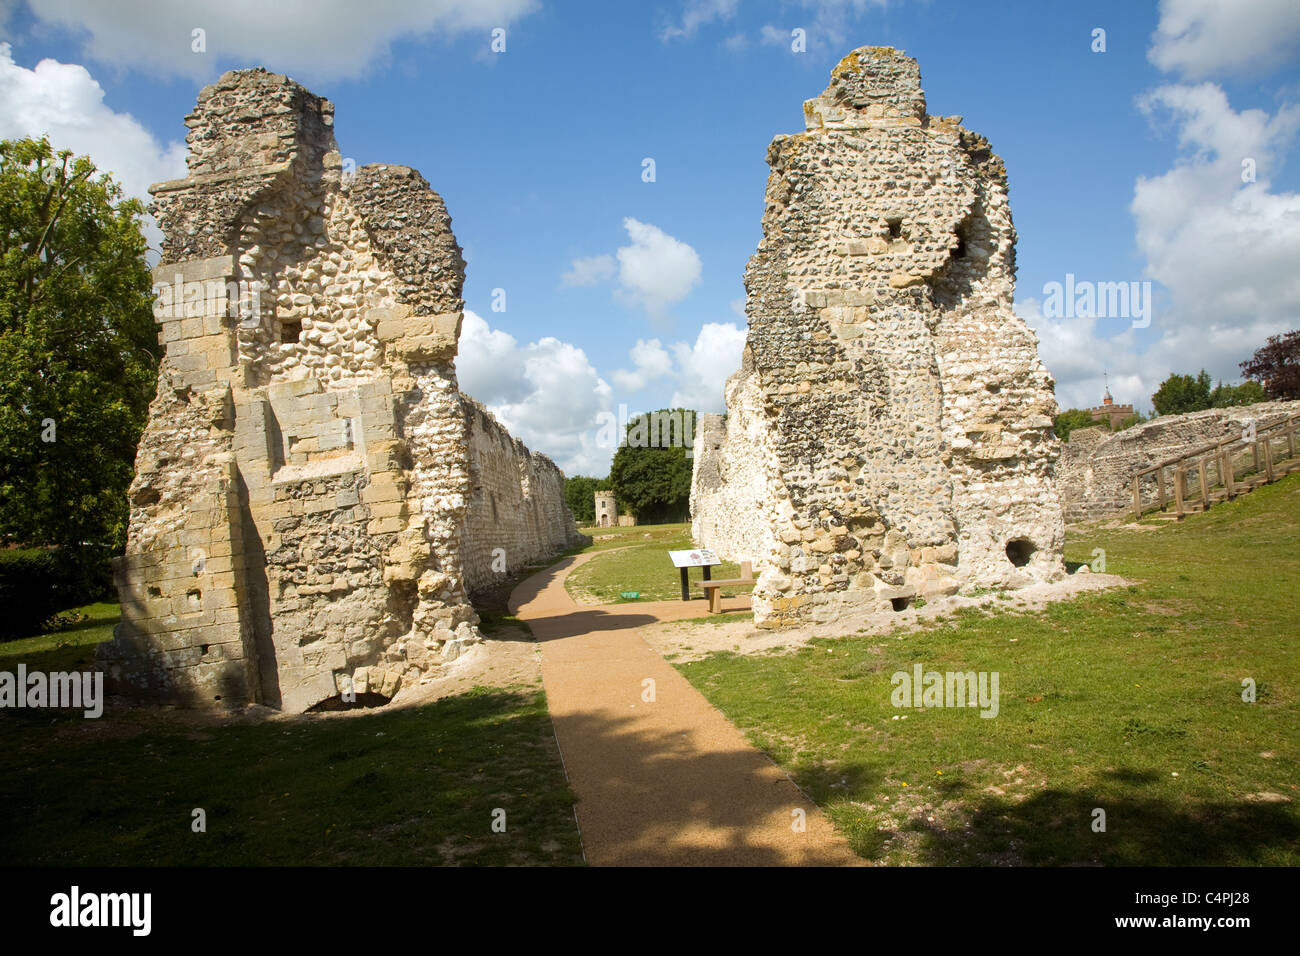 Ruins of Saint Pancras priory, Lewes, East Sussex, England - Stock Image